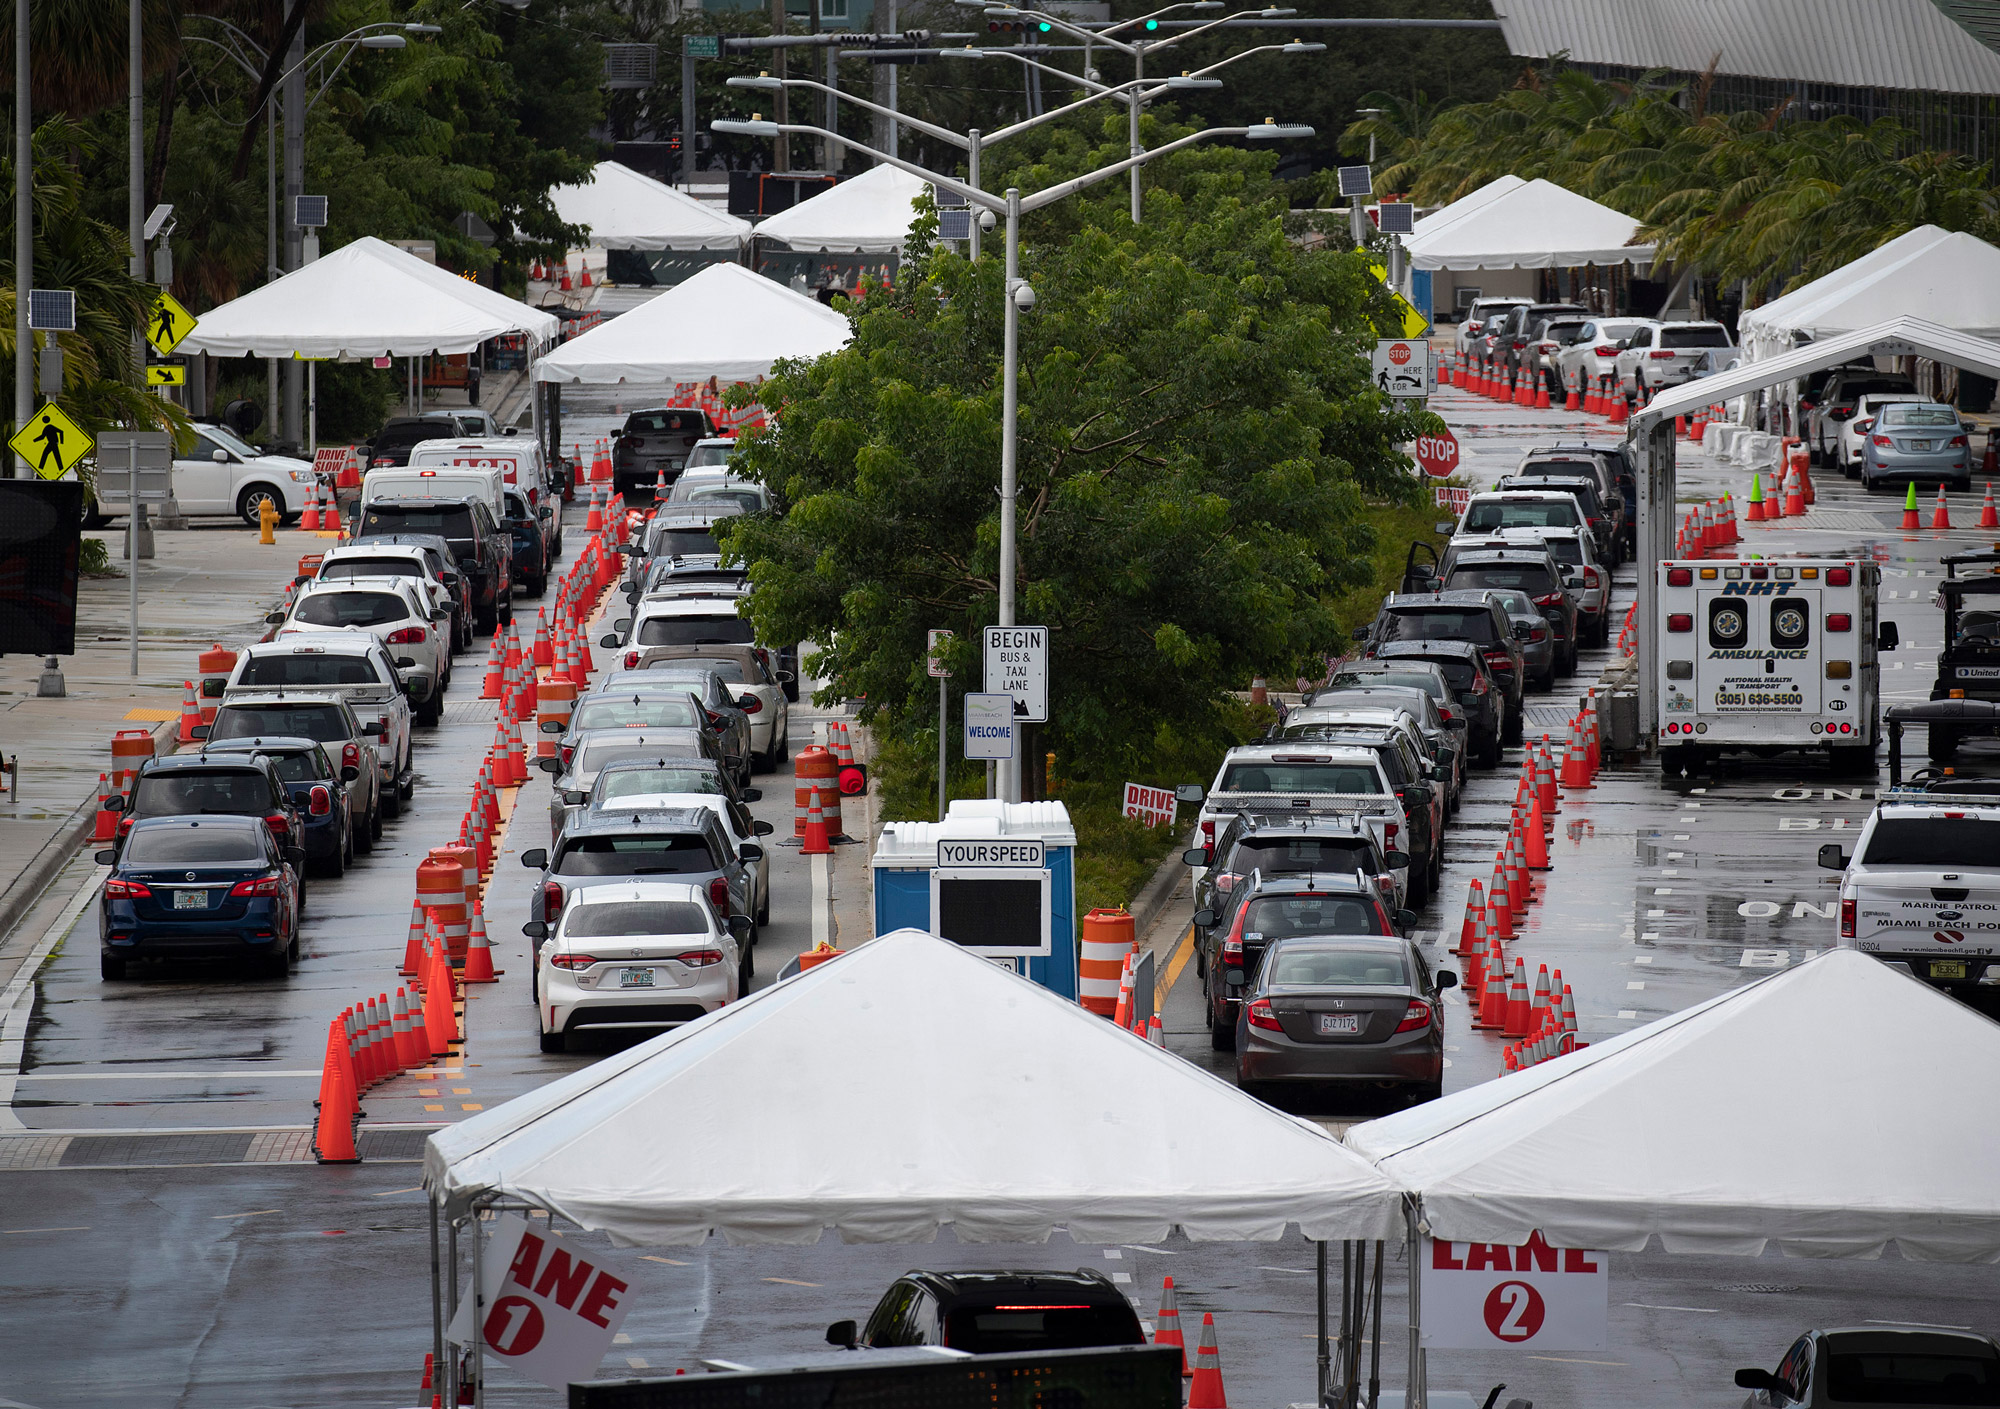 Cars are seen in line as the drivers wait to be tested for COVID-19 at the COVID test site located at the Miami Beach Convention Center on July 13 in Miami Beach, Florida.